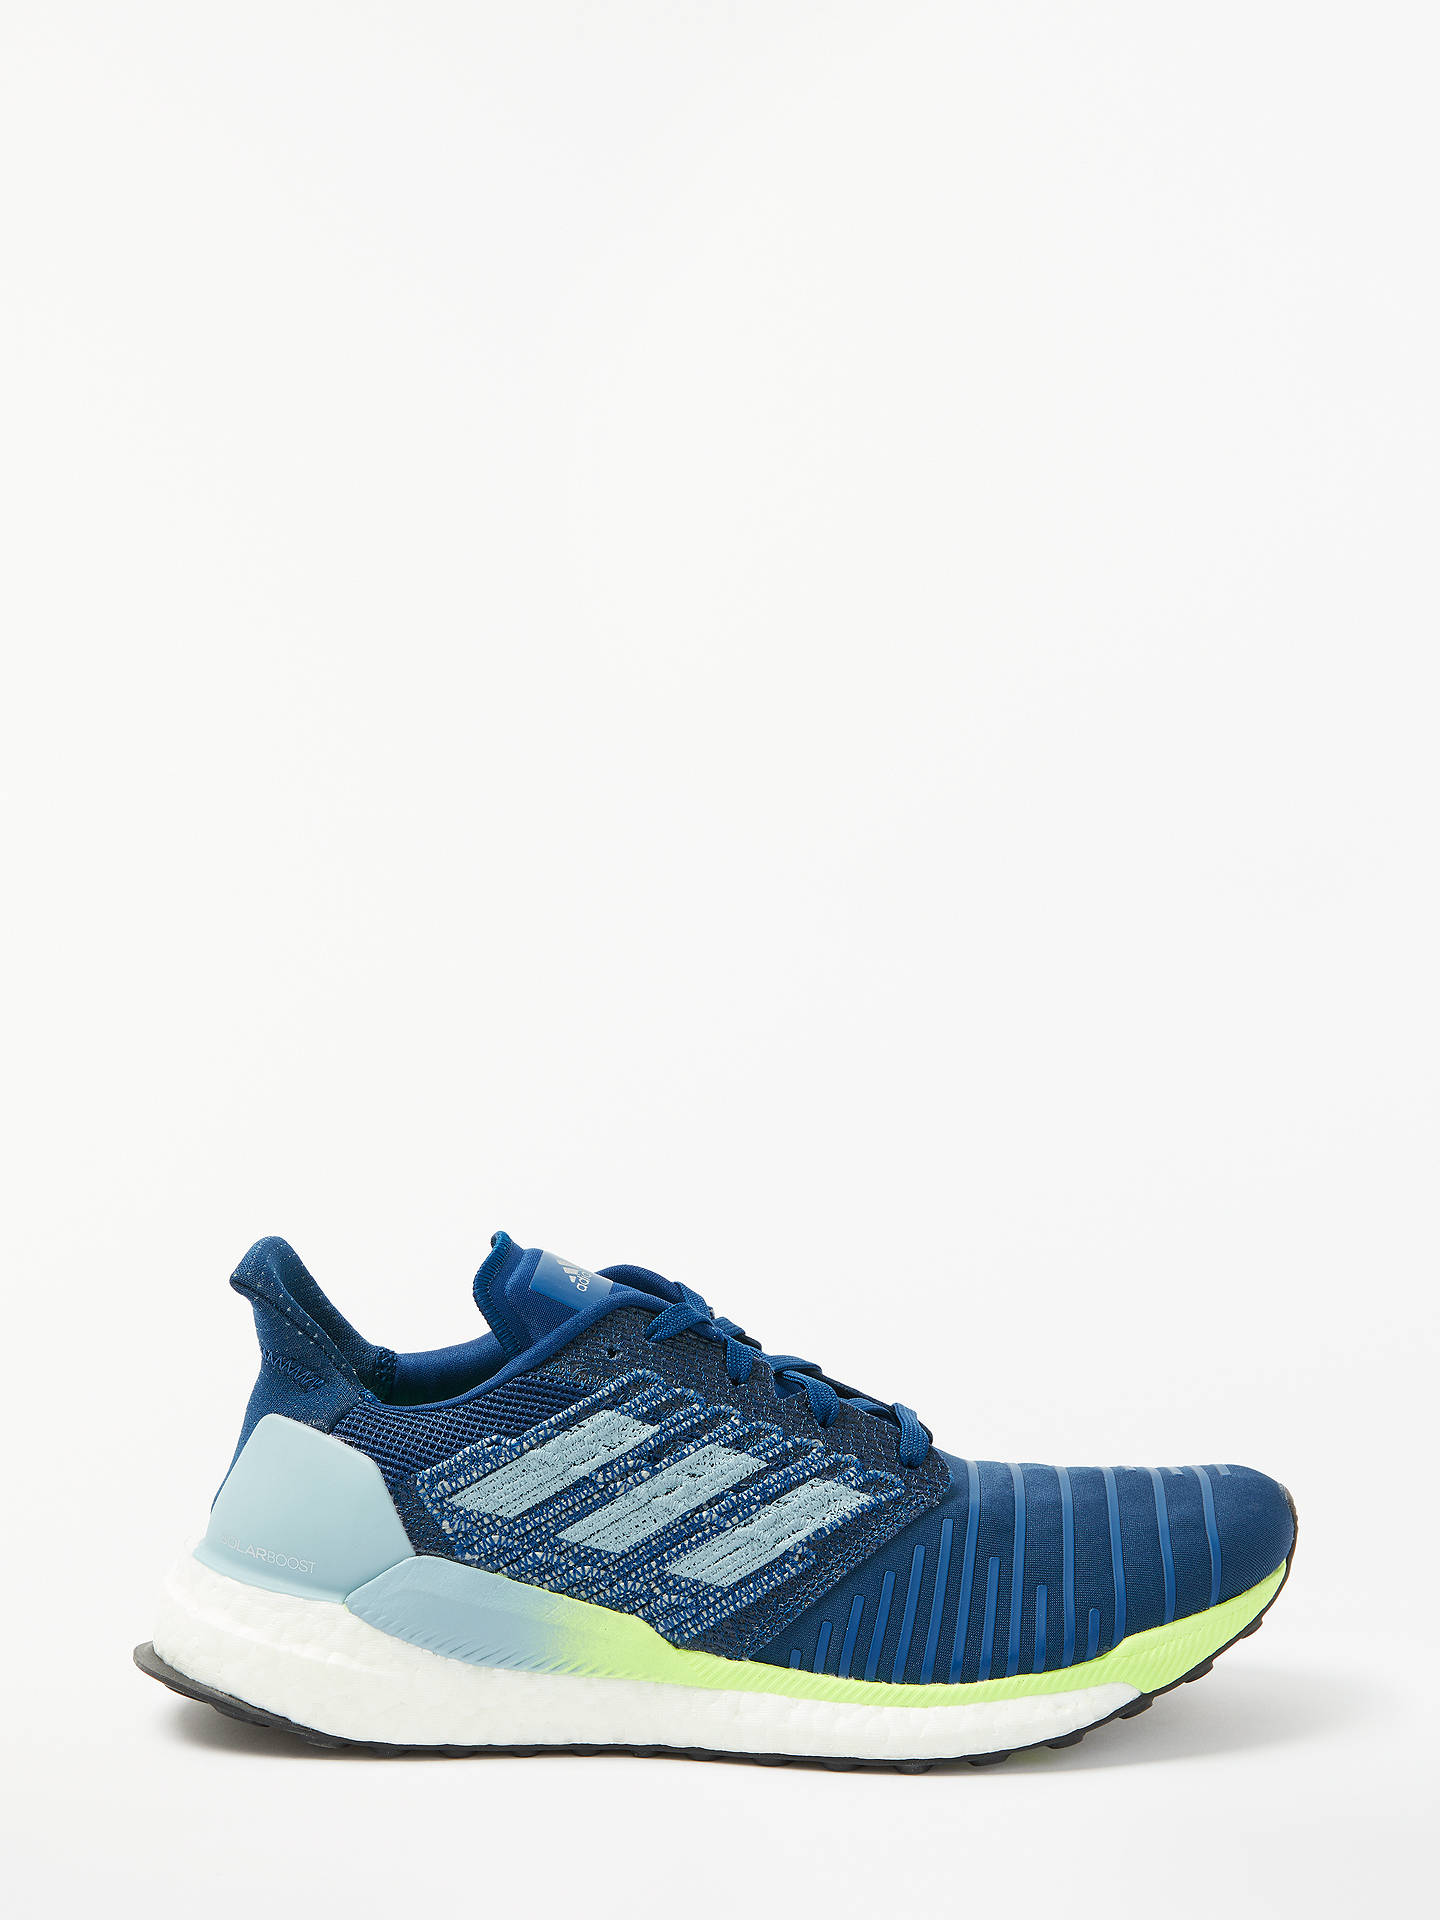 1eb98e97a Buy adidas Solar Boost Men s Running Shoes